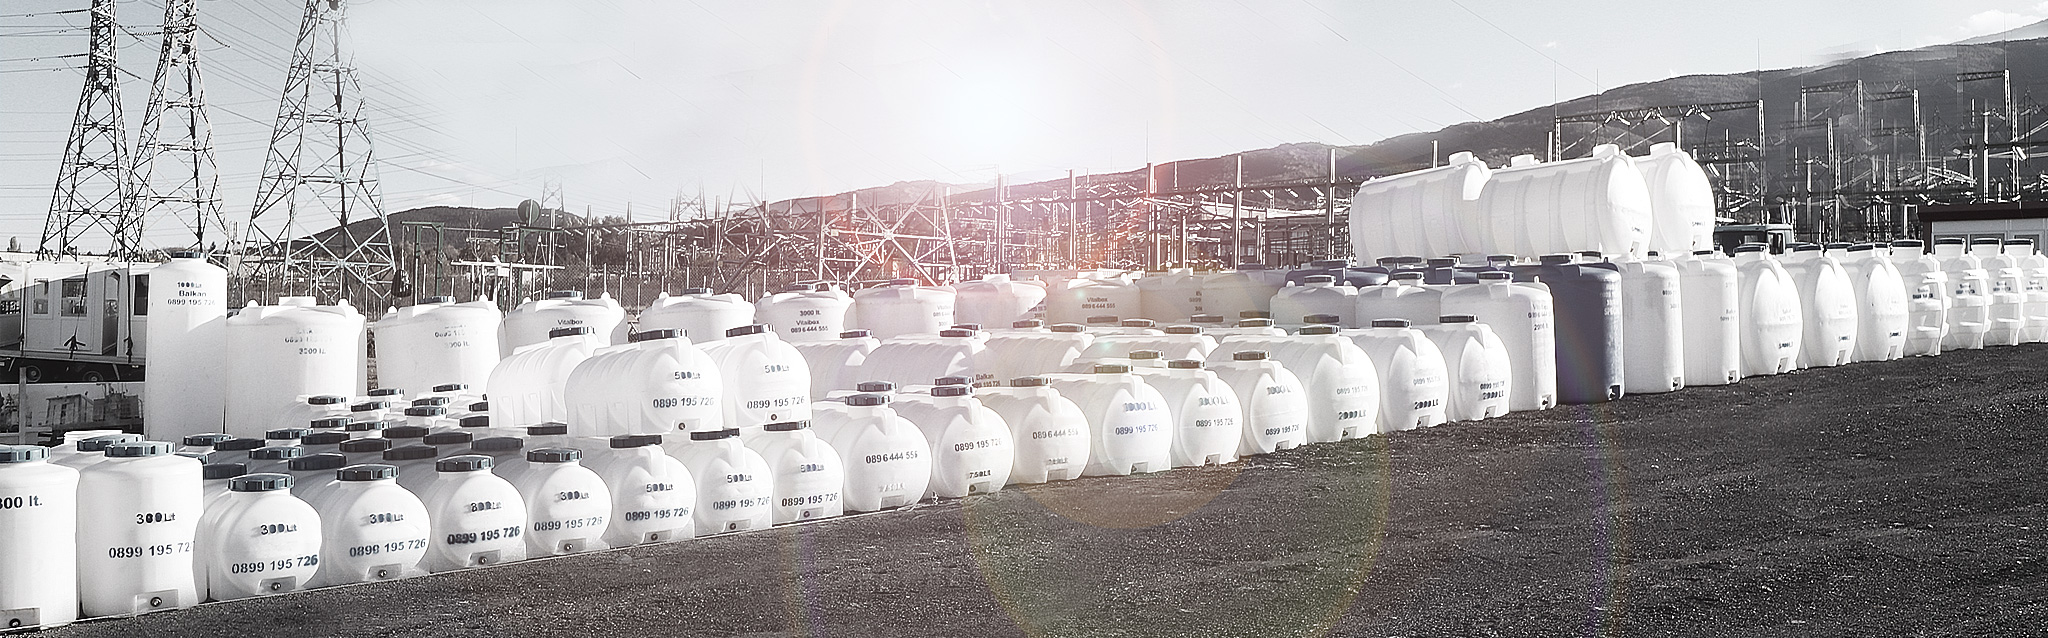 Tanks for septic pit